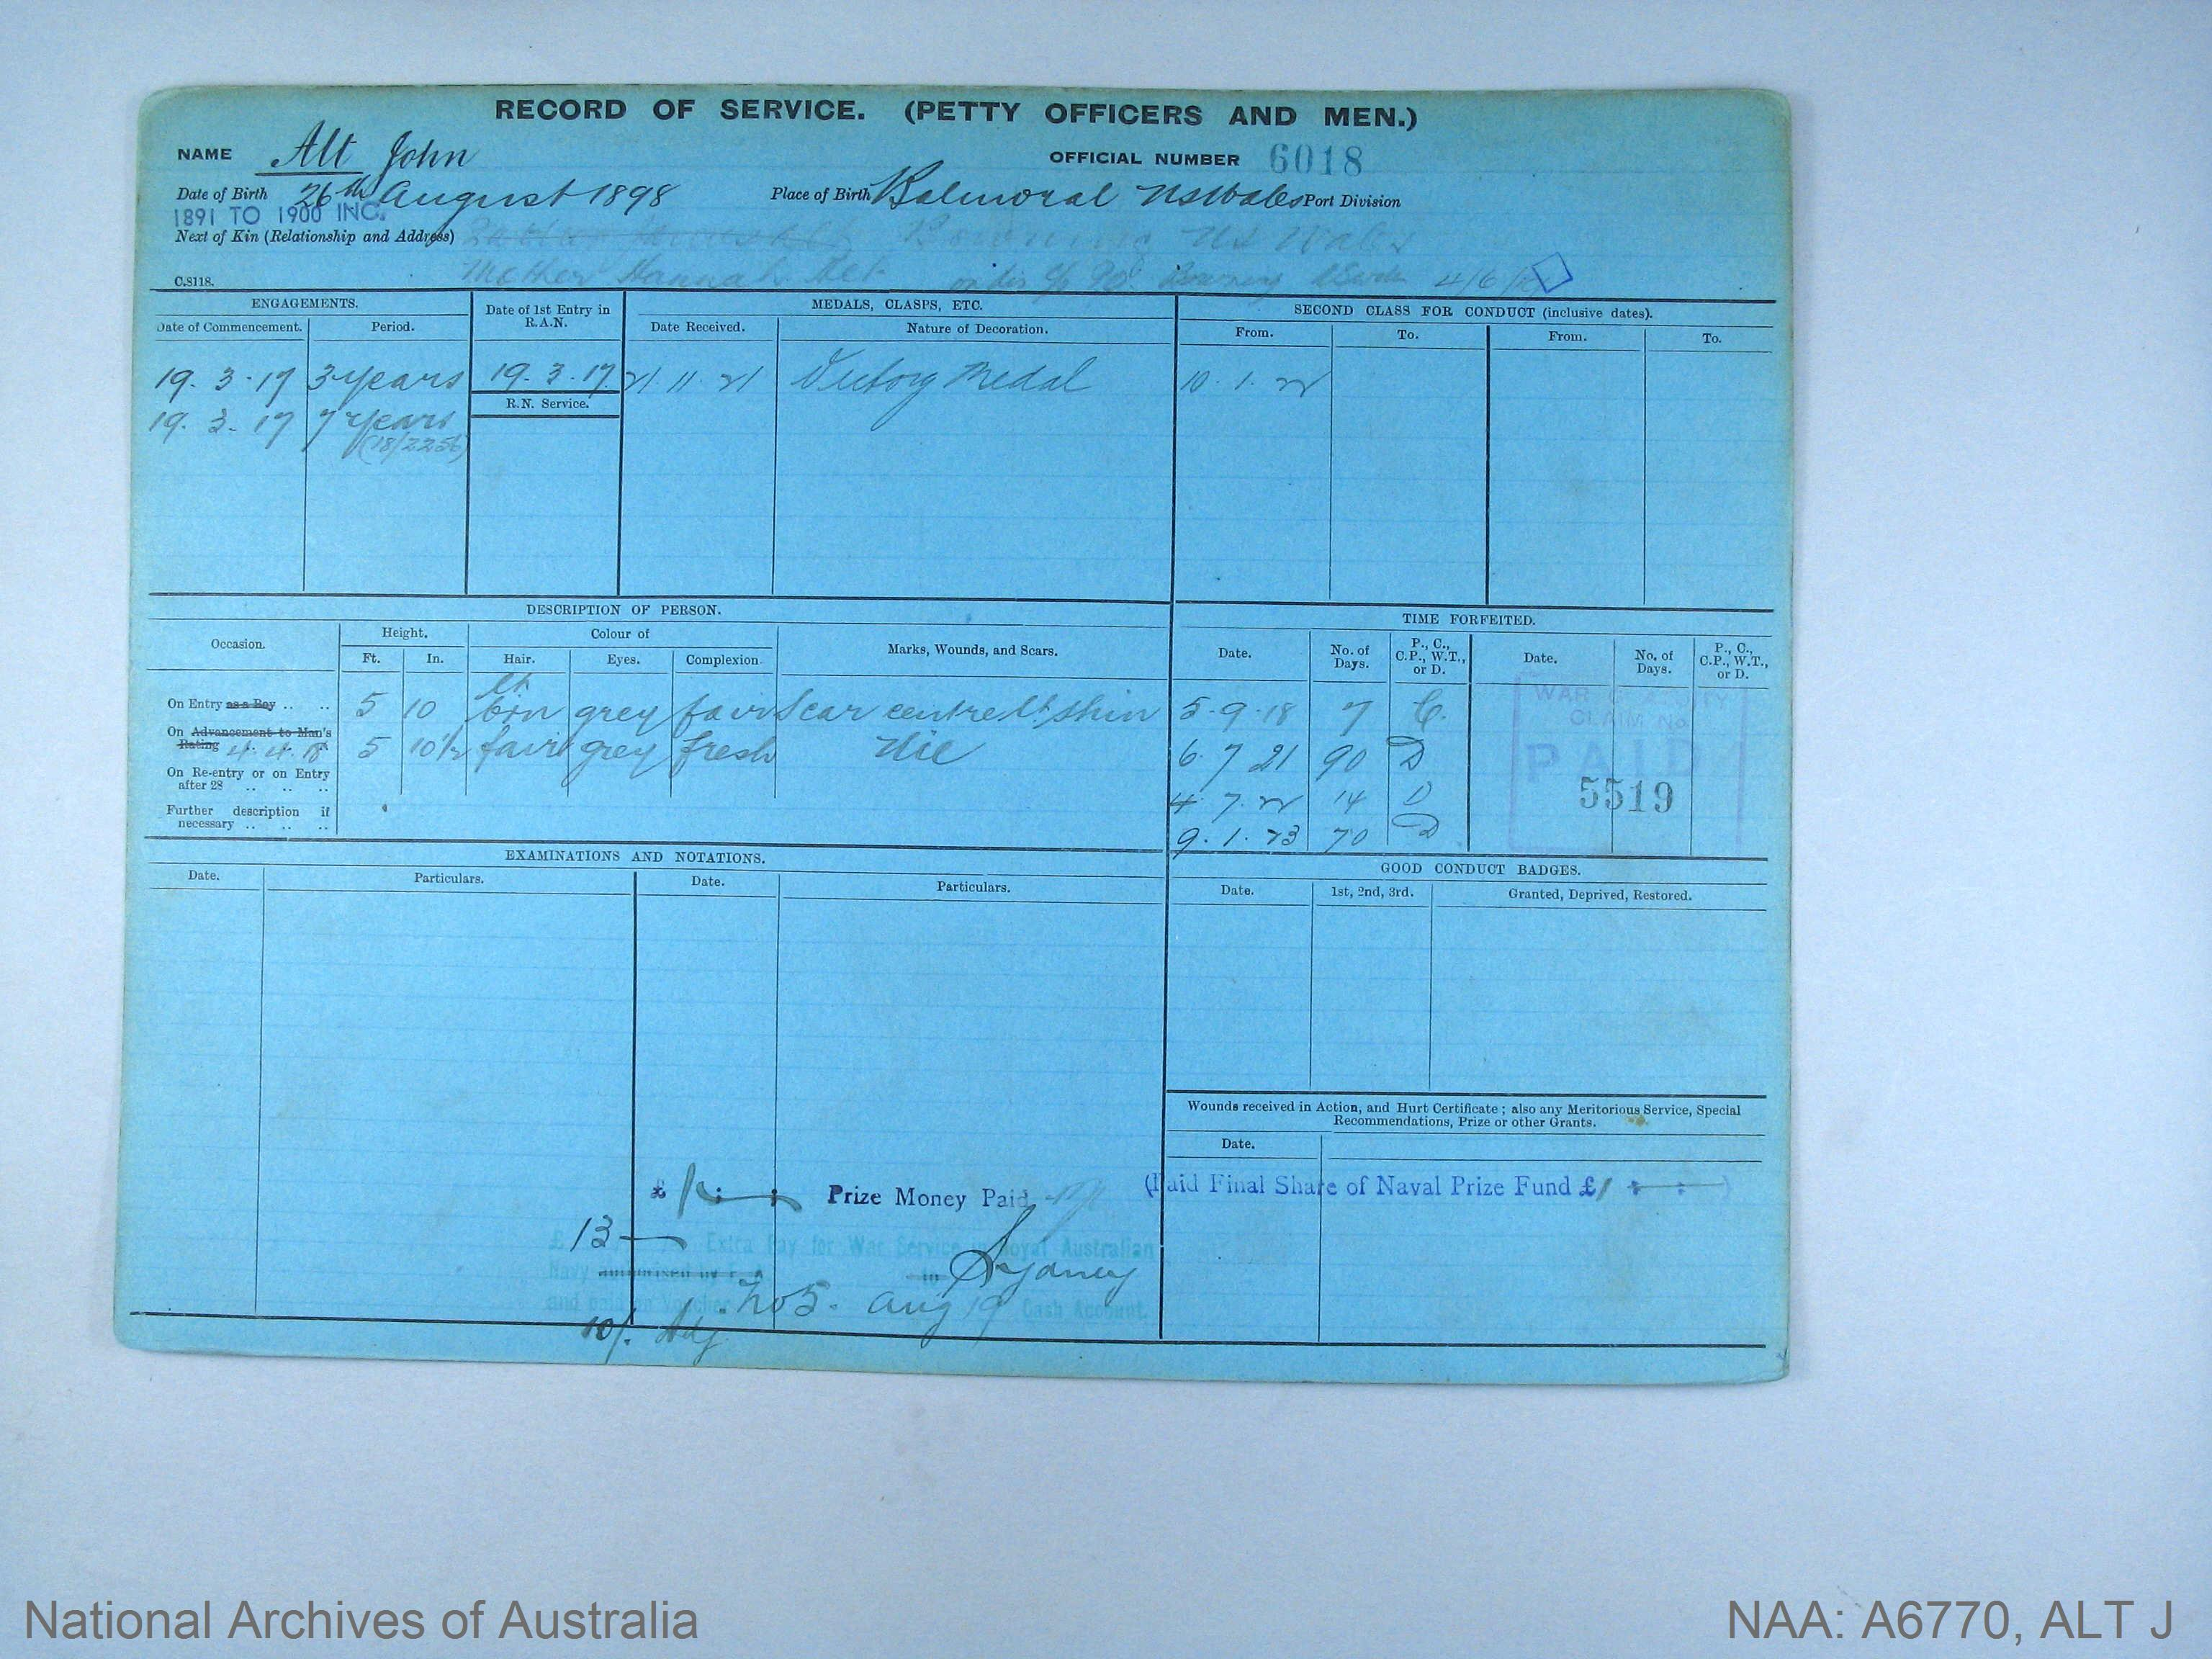 ALT JOHN : Service Number - 6018 : Date of birth - 26 Aug 1898 : Place of birth - BALMORAL NSW : Place of enlistment - Unknown : Next of Kin - ALT HANNAH